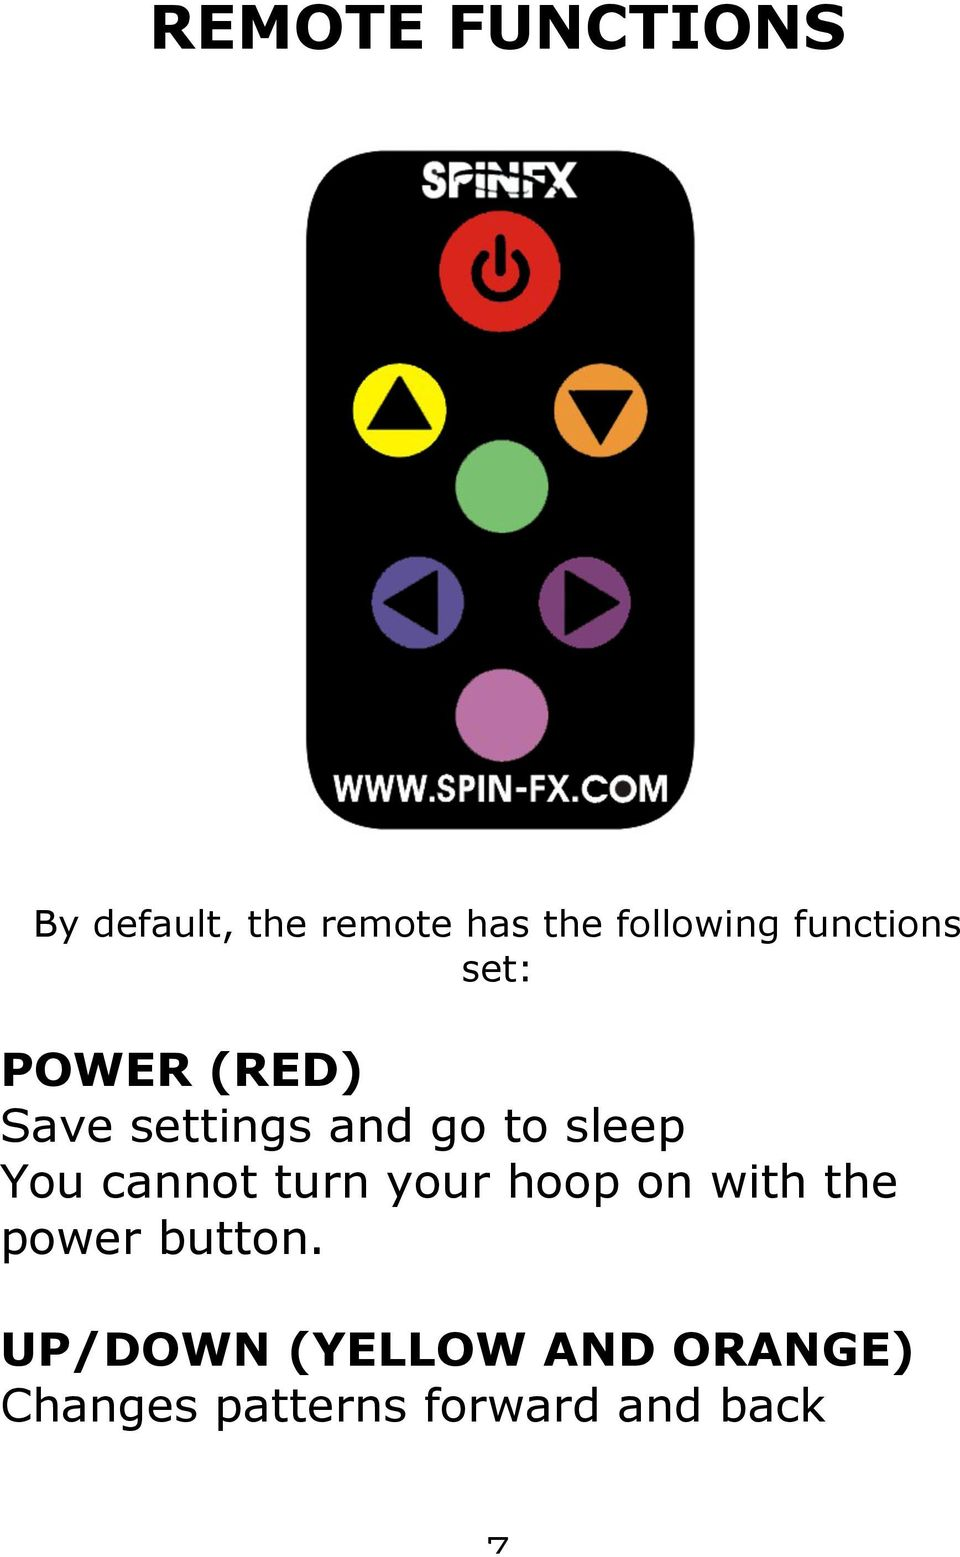 You cannot turn your hoop on with the power button.